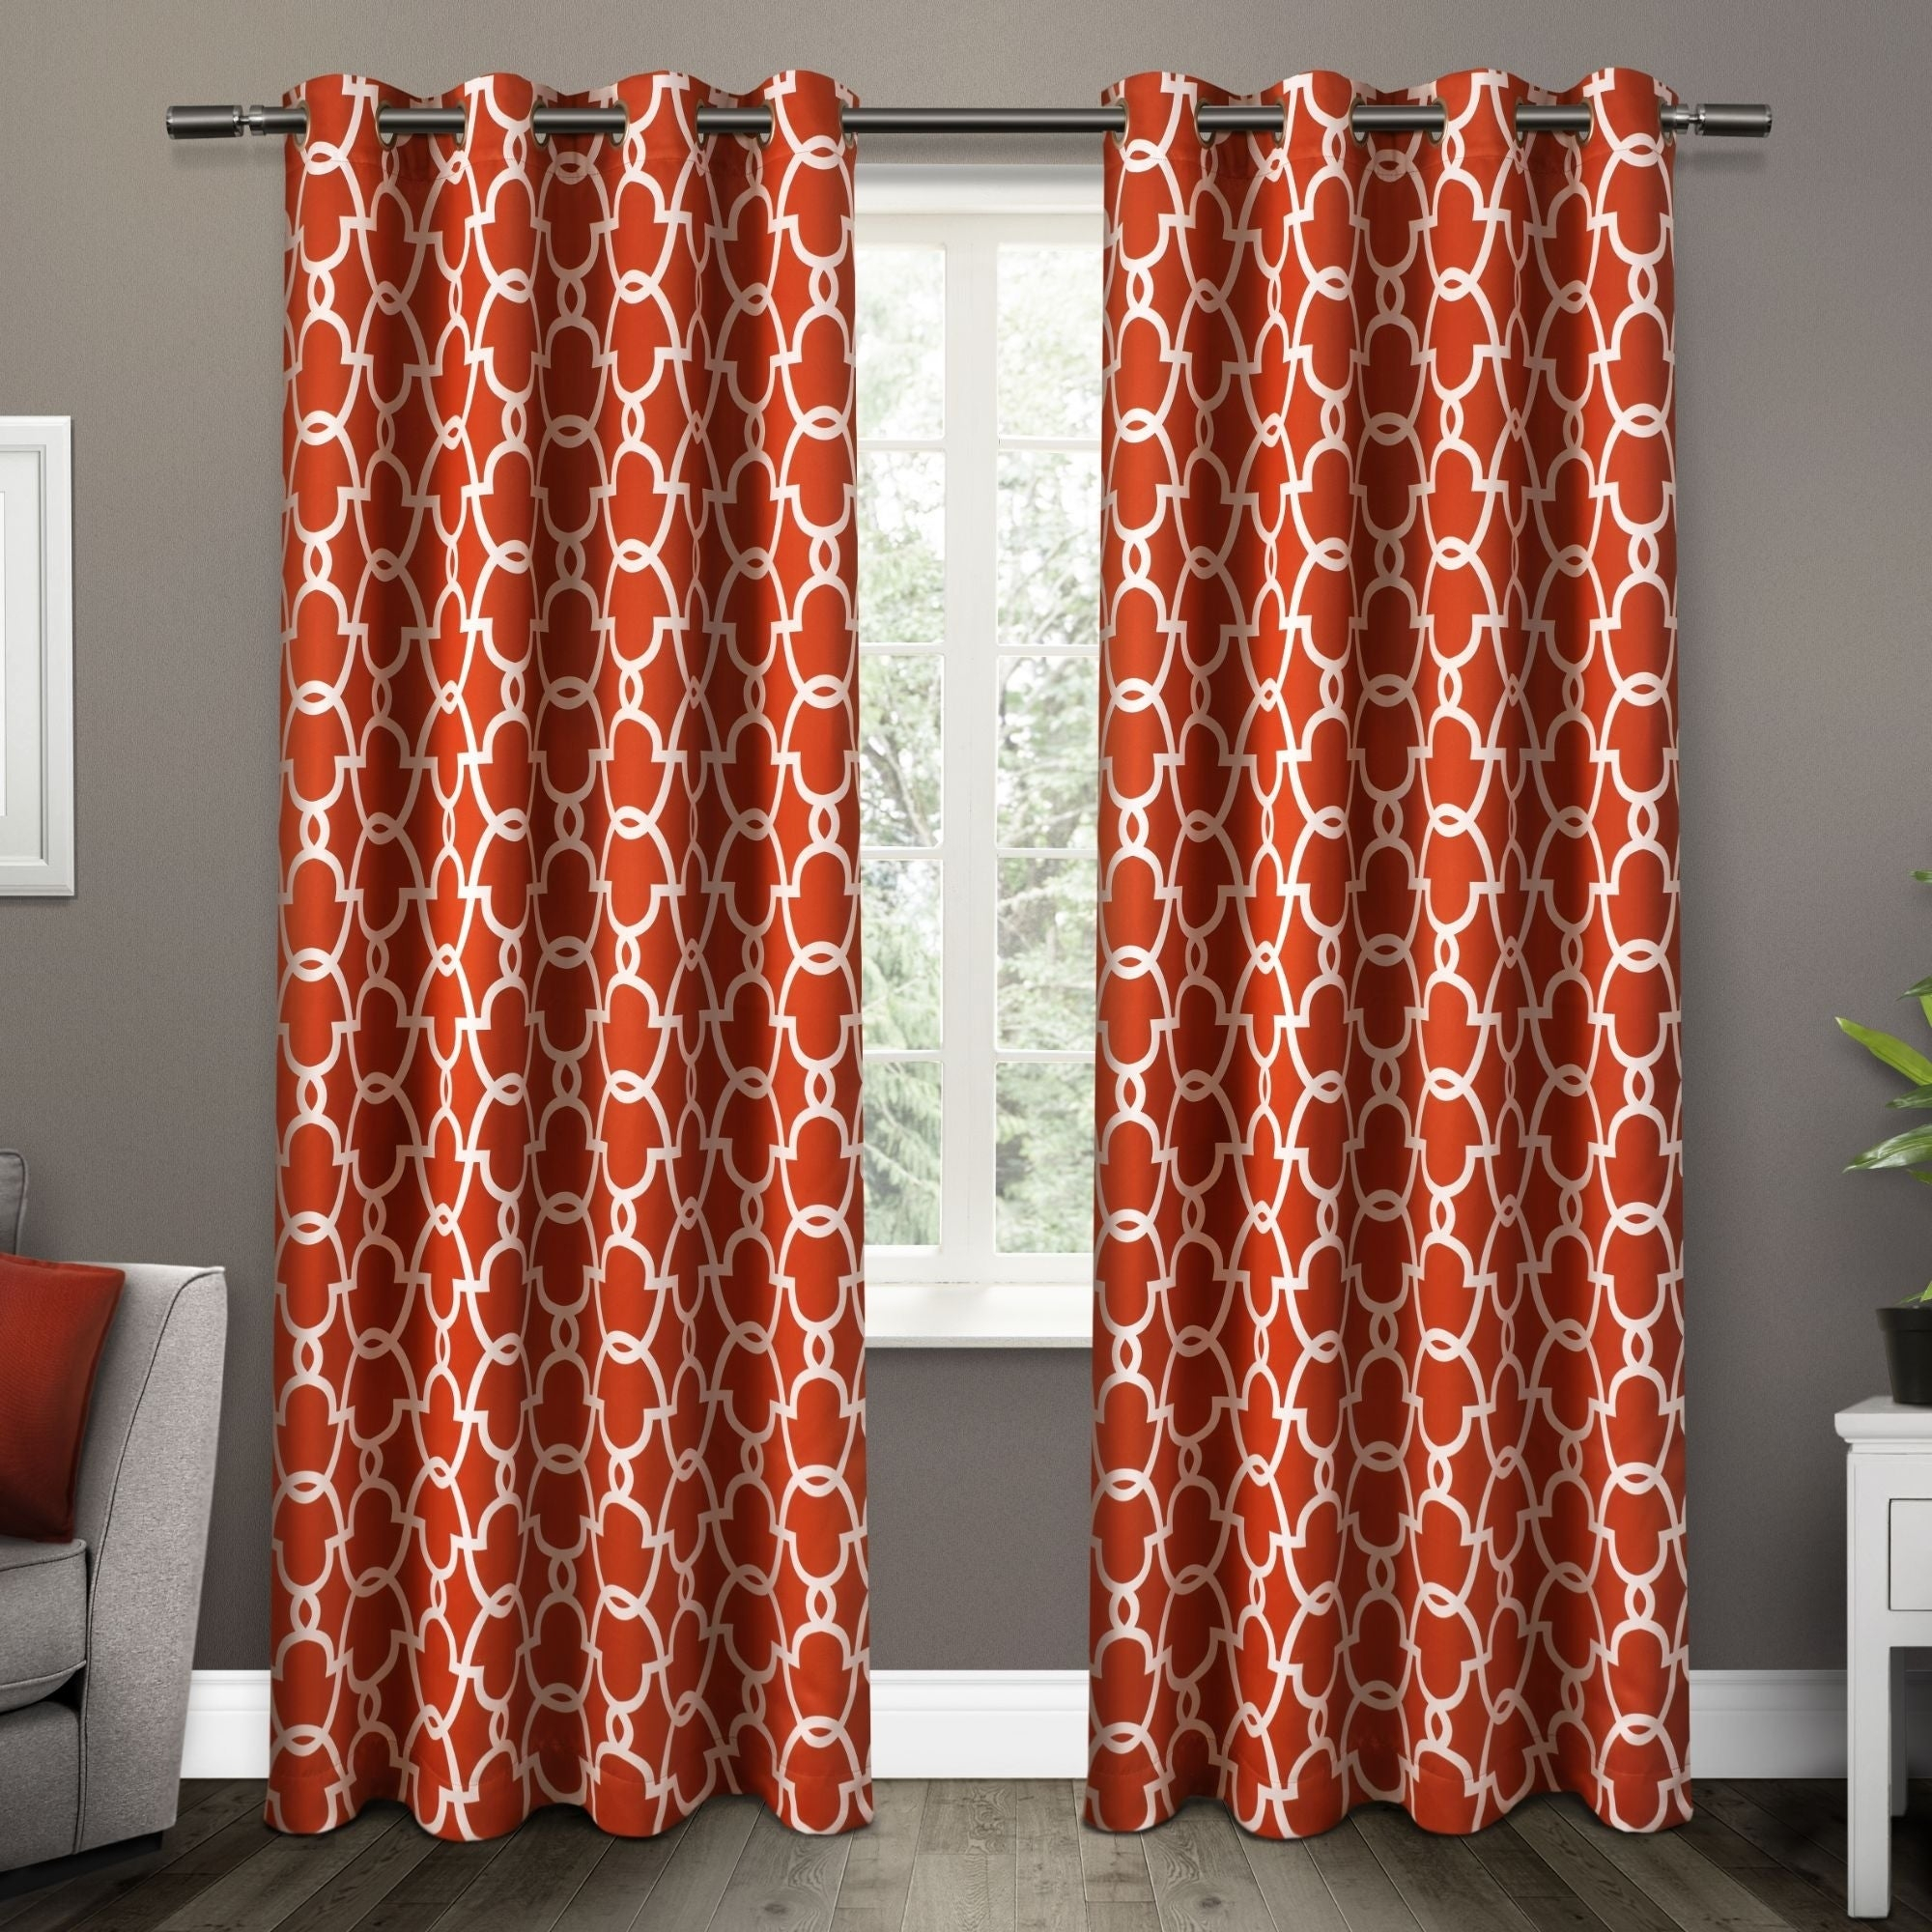 The Curated Nomad Vicksburg Thermal Woven Blackout Grommet Top Curtain Panel Pair Pertaining To The Curated Nomad Duane Blackout Curtain Panel Pairs (View 14 of 30)